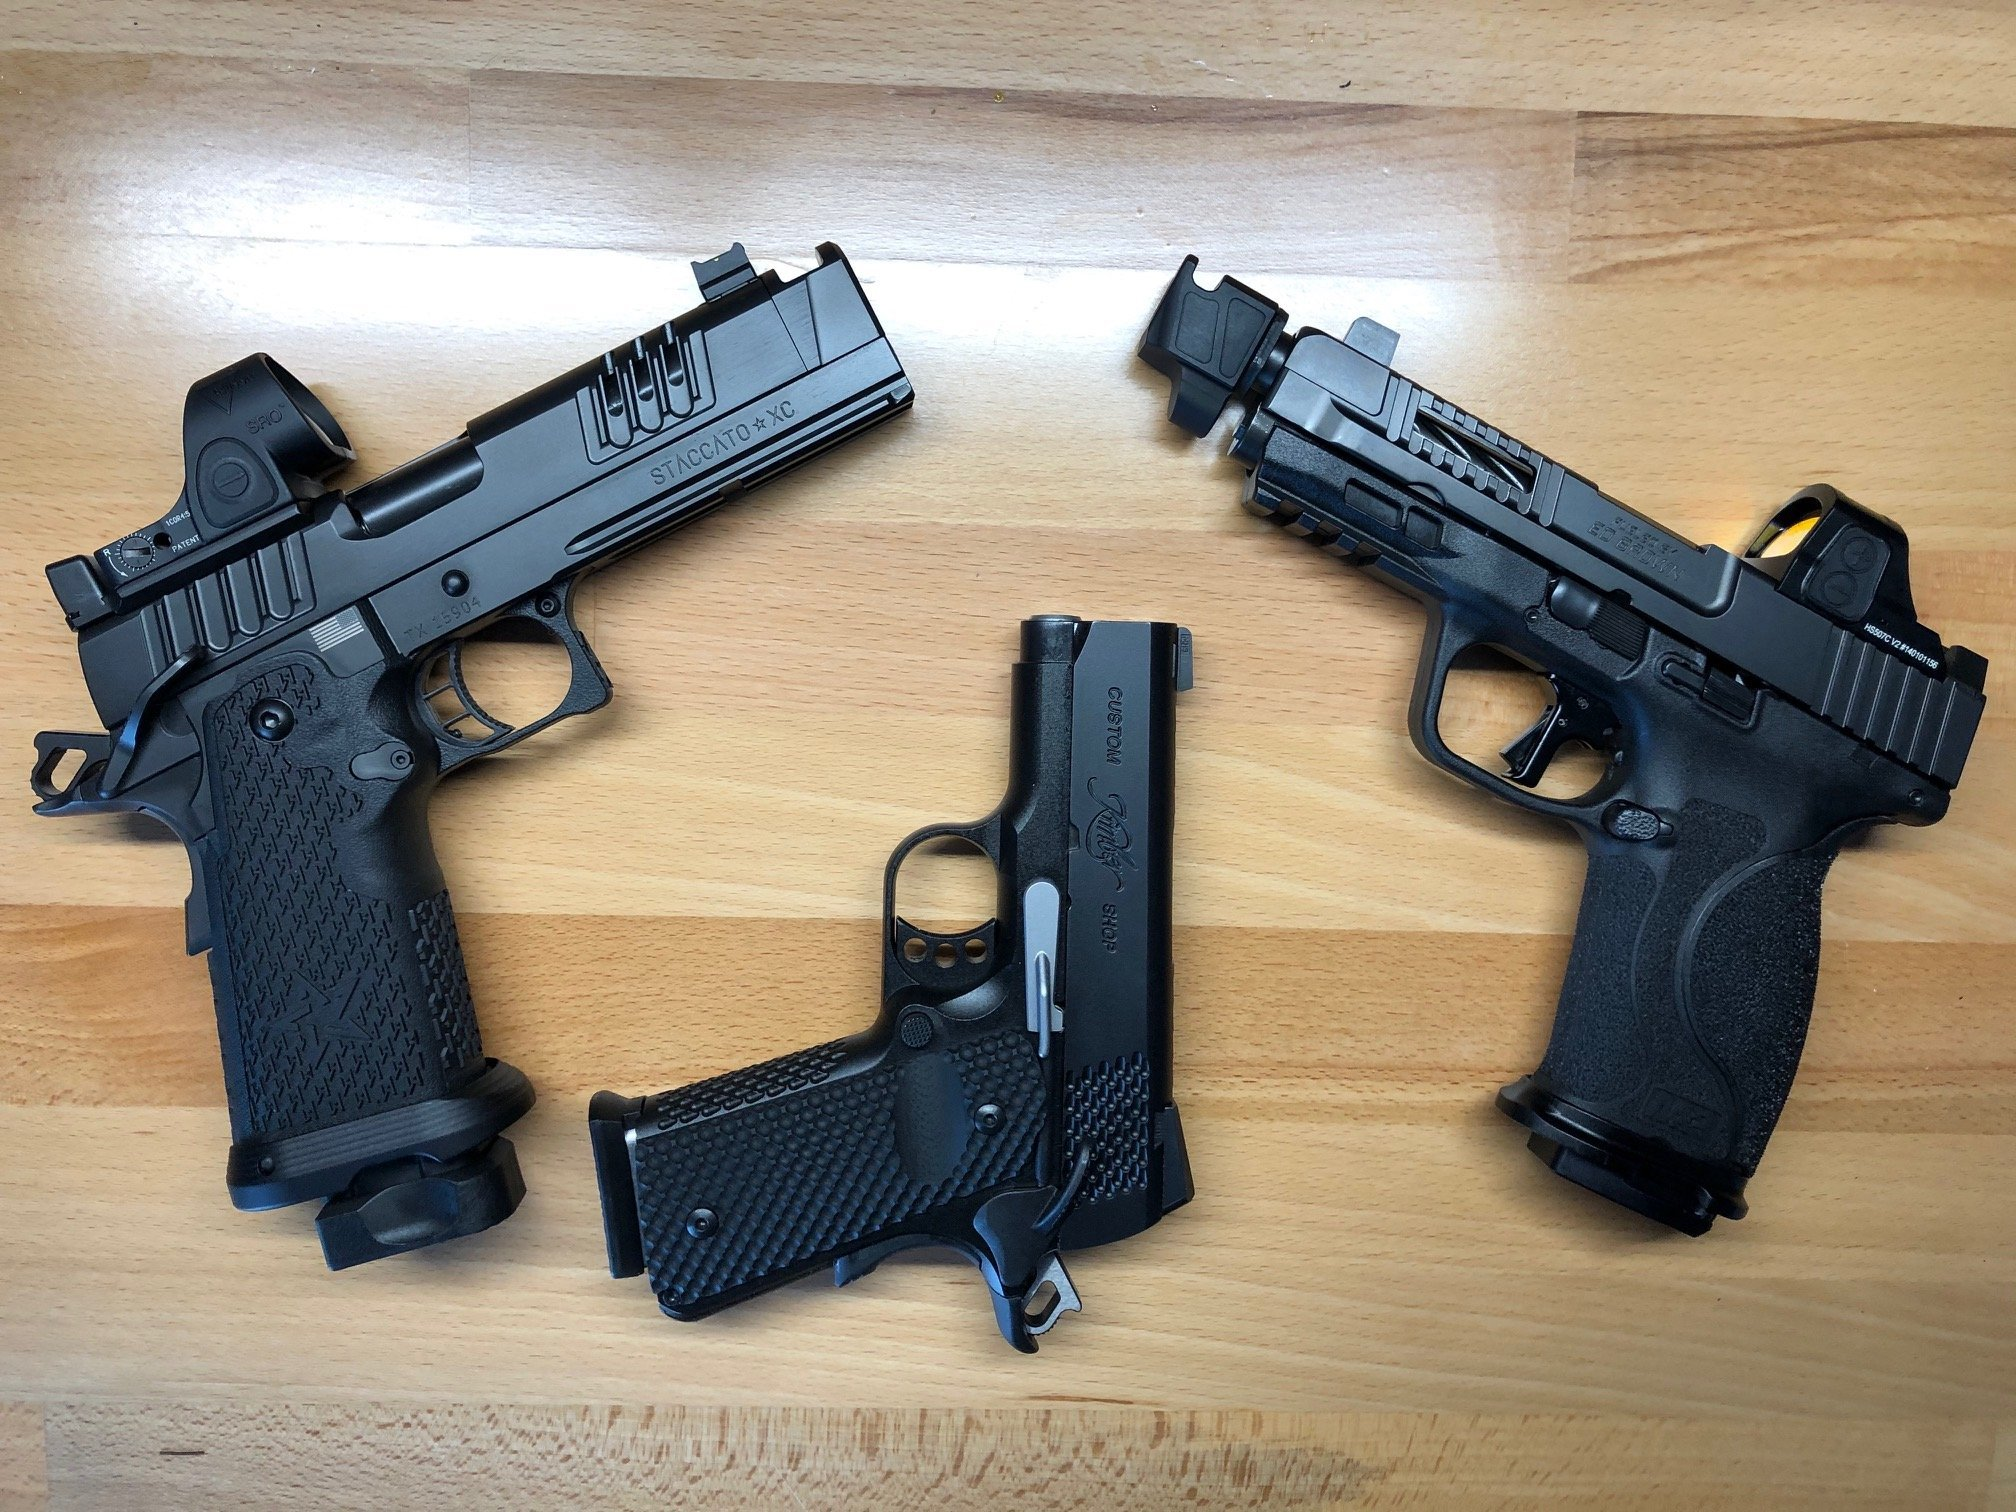 Click image for larger version  Name:Non Wilson Guns.jpg Views:14 Size:796.3 KB ID:583490